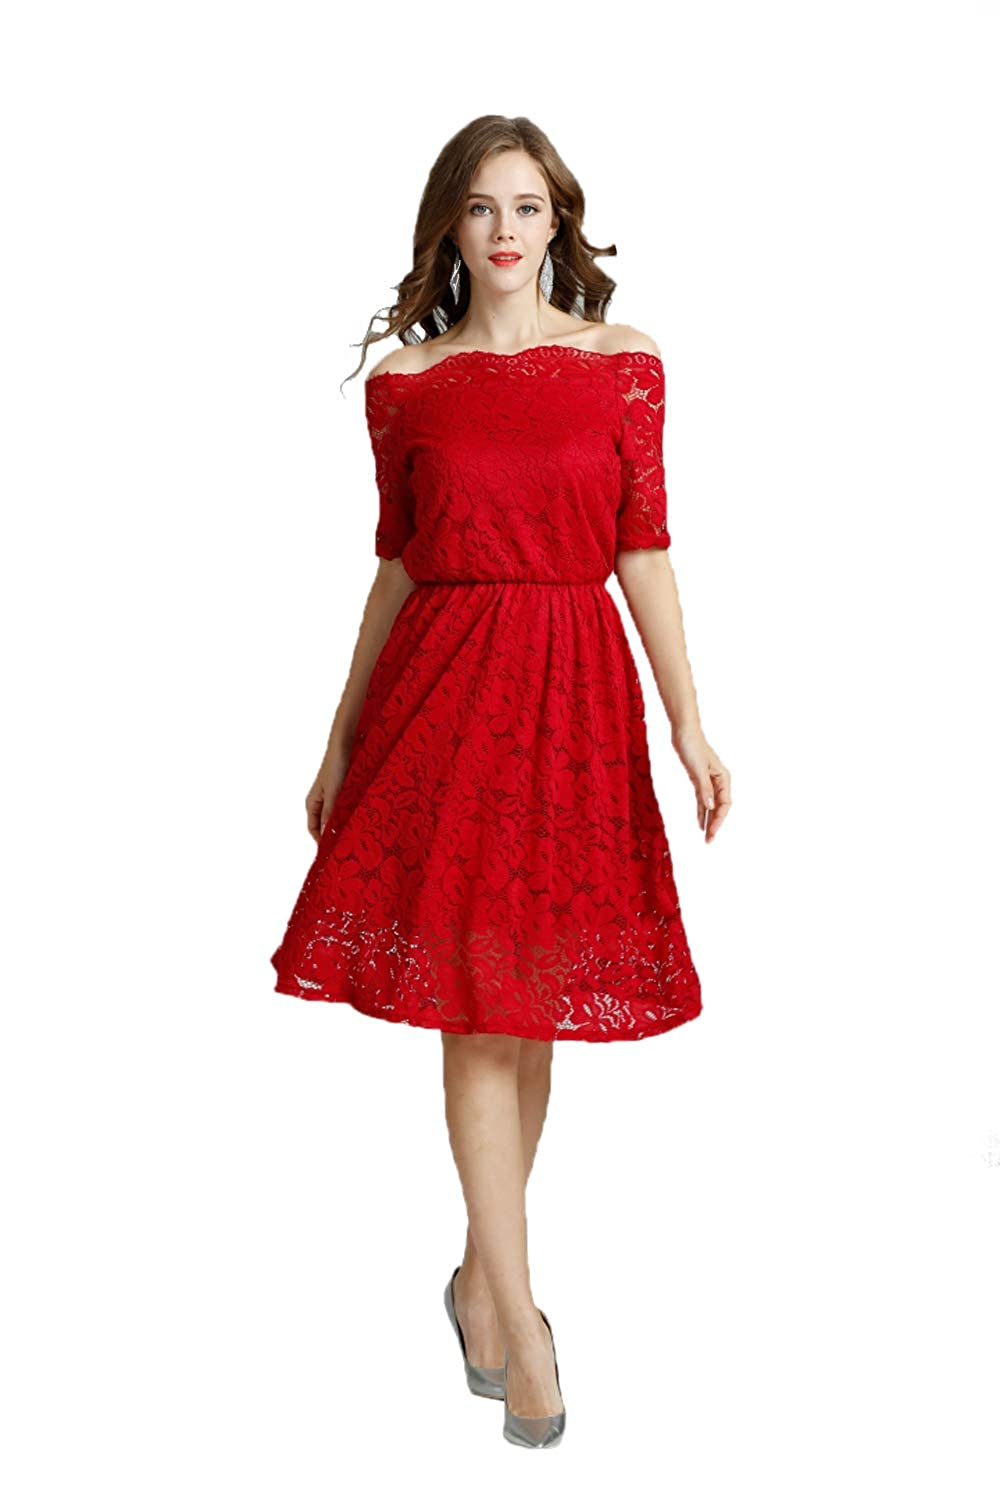 Amazon.com  Women s Vintage Floral Lace Formal Dresses for Any Plus Size  Women Boat Neck Swing Cocktail Dress for Wedding (L 034666535